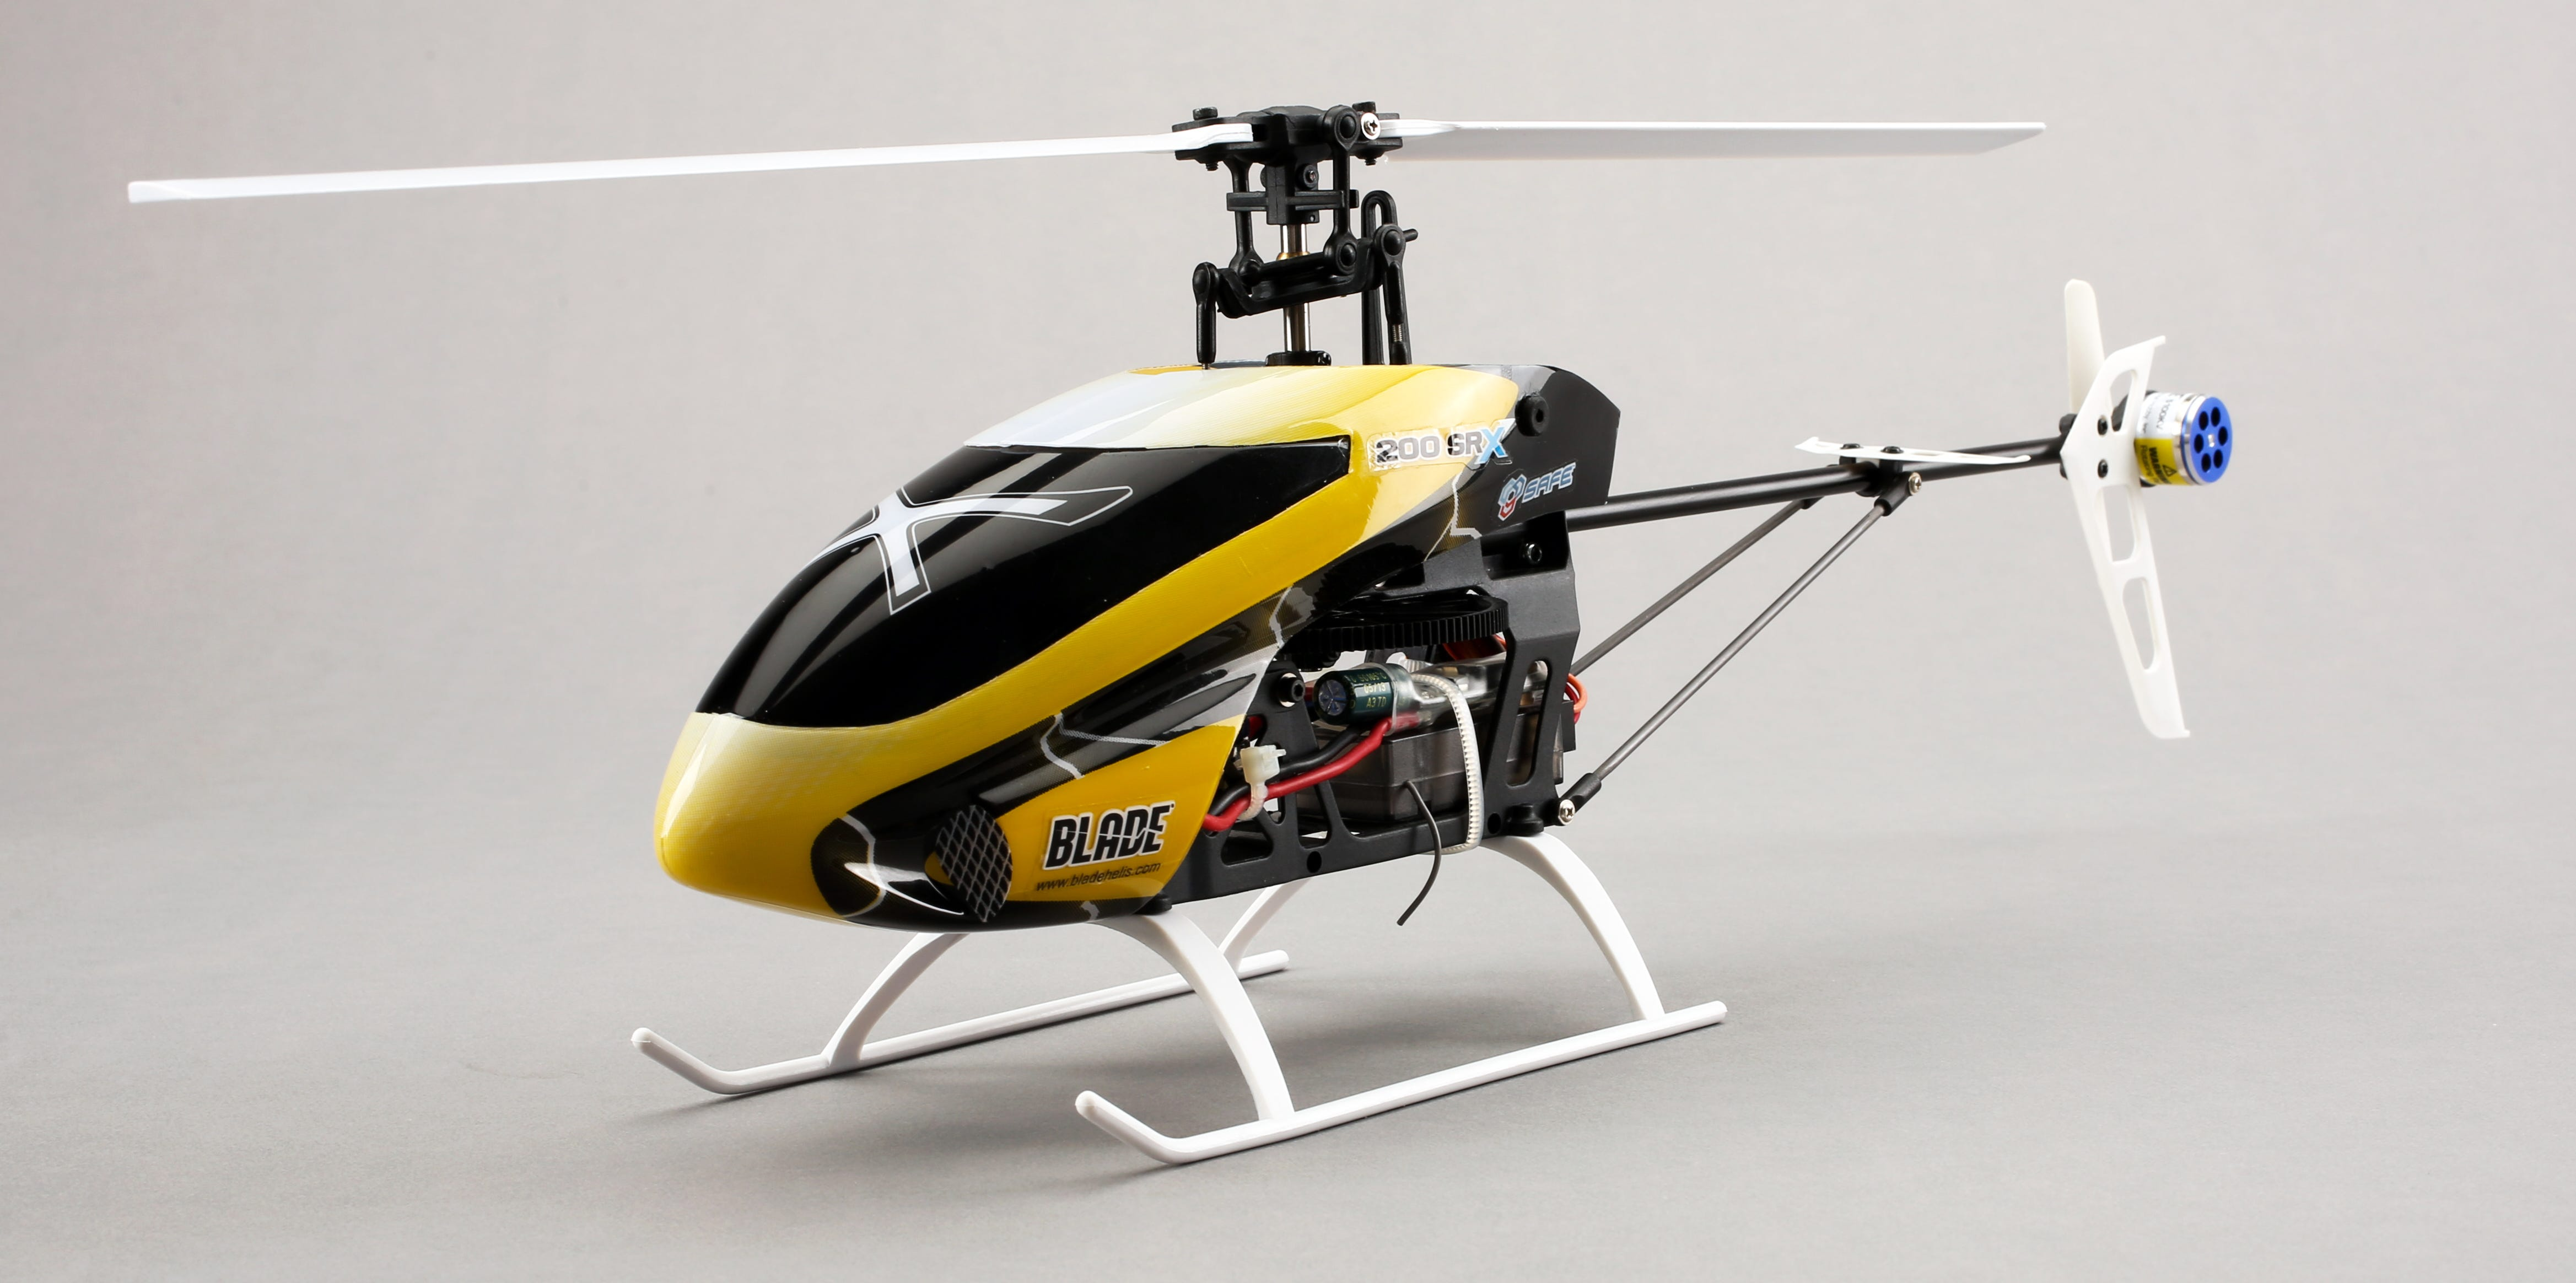 Just Announced - Blade 200 SR Coming to Modelflight